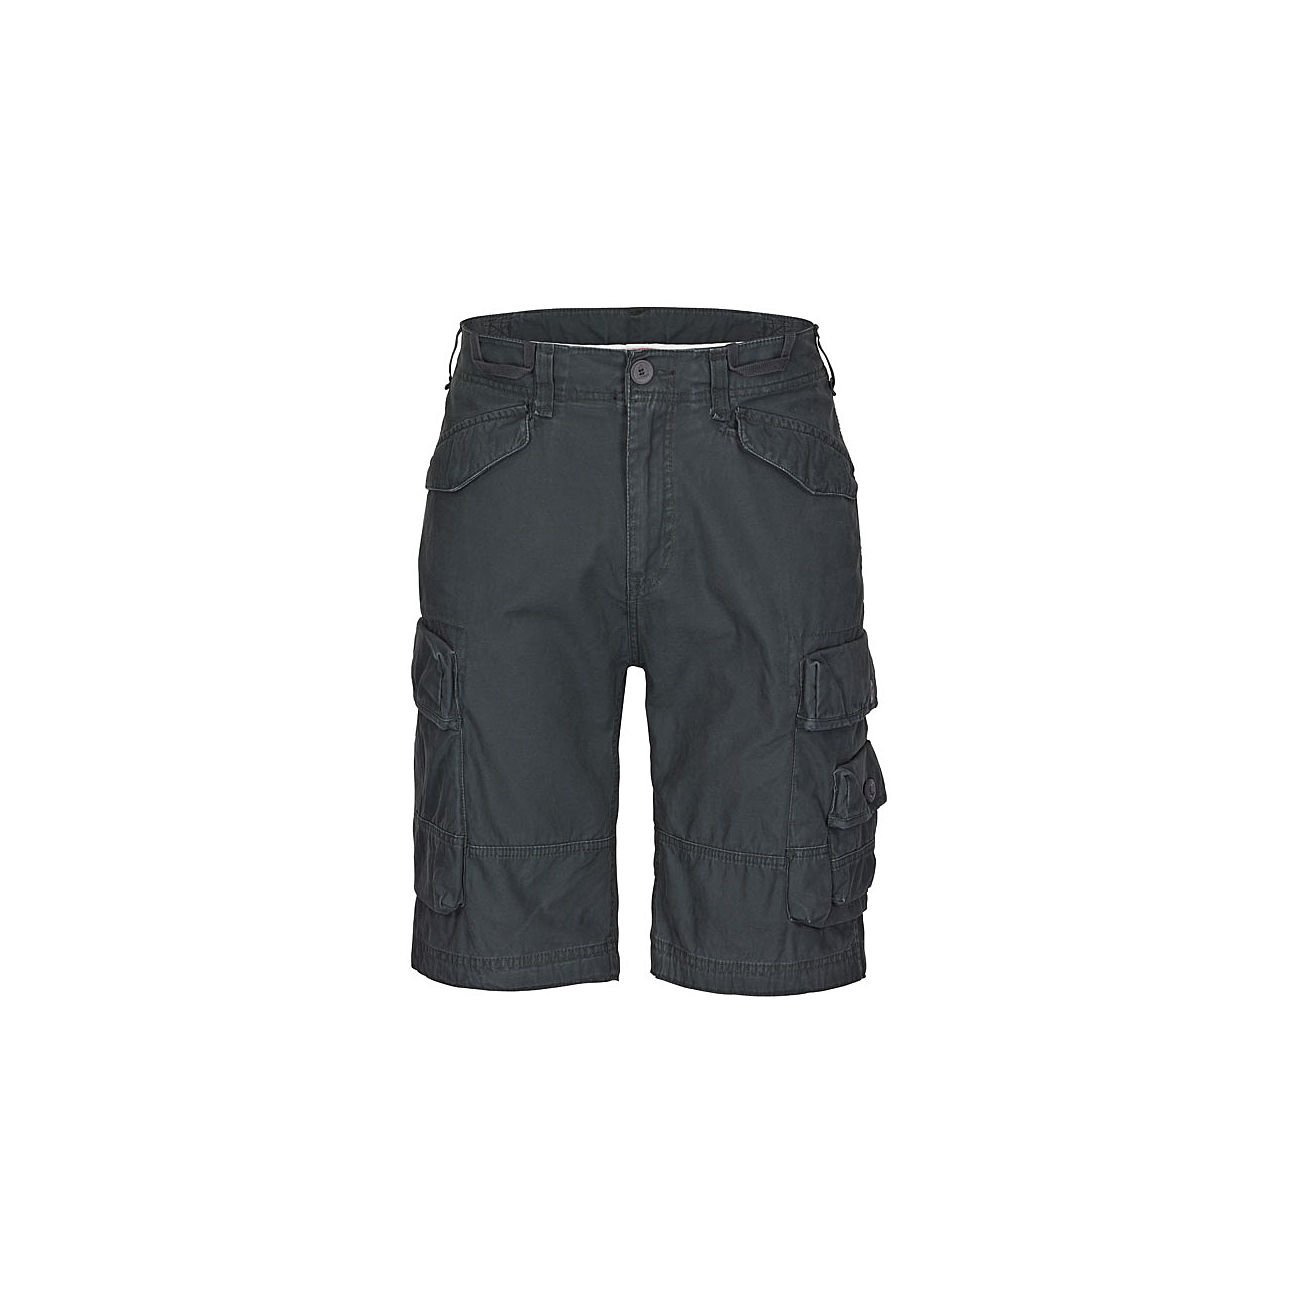 Vintage Industries Shore Shorts Anthrazit 0